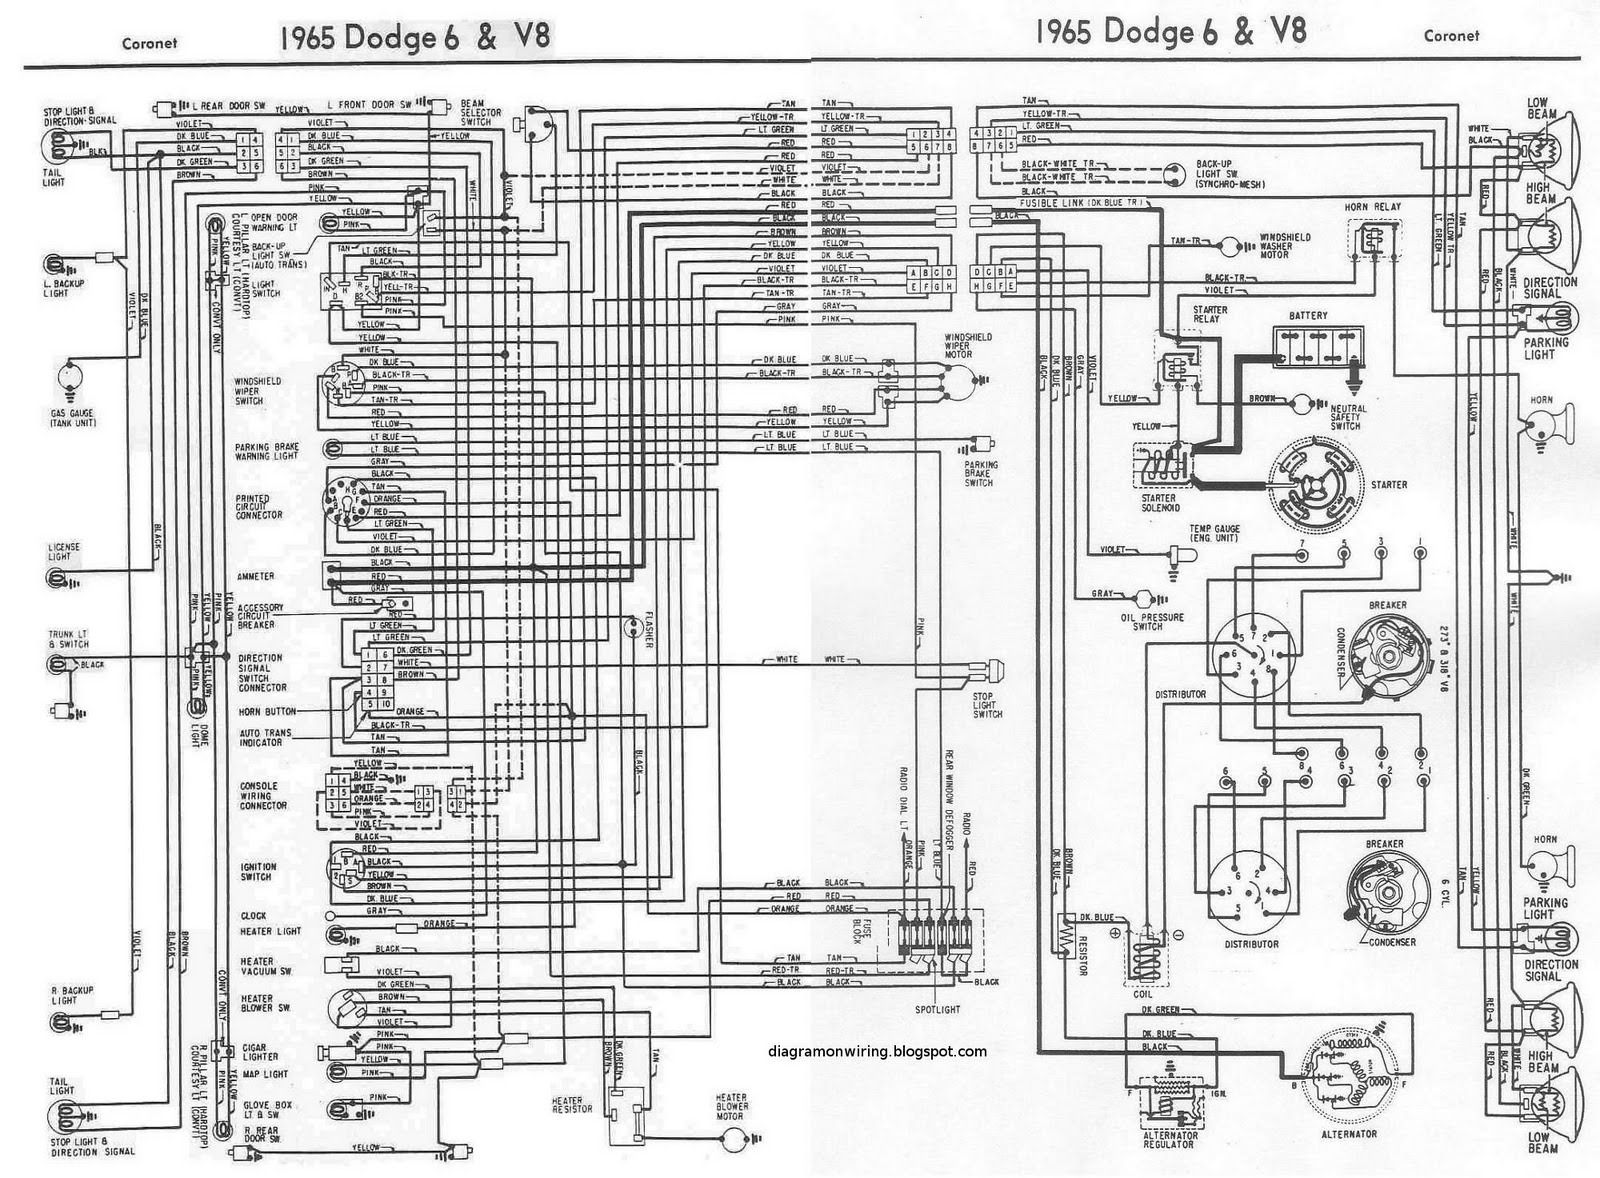 small resolution of wirings of 1964 plymouth 6 and v8 valiant part 1 diagram data schema diagram 1964 plymouth 6 and v8 valiant part 1 wiring 1964 plymouth